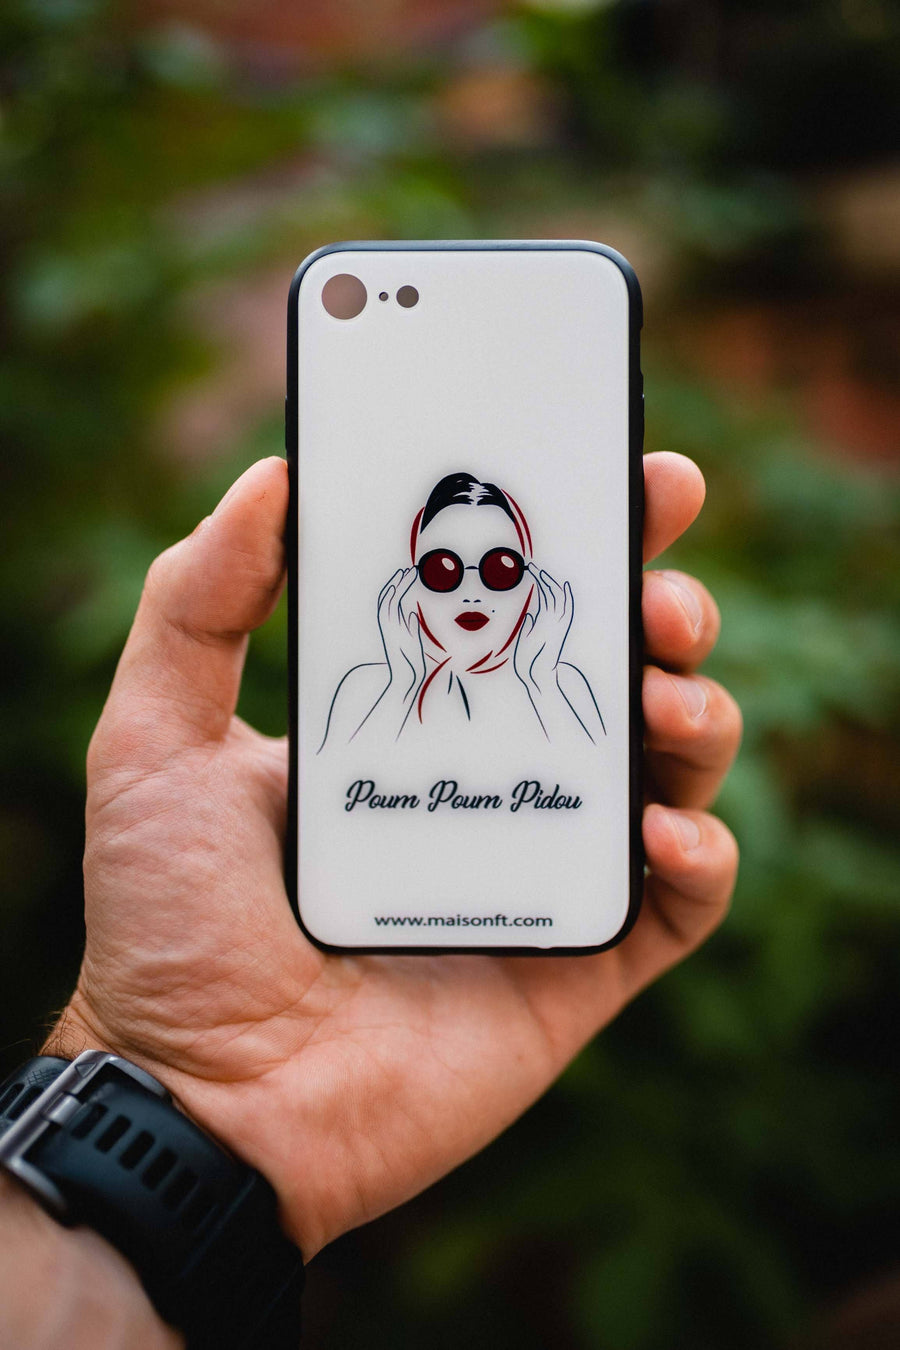 Coque Iphone Marylin - Made in France Coque d'Iphone - Maison FT made in France ou Bio